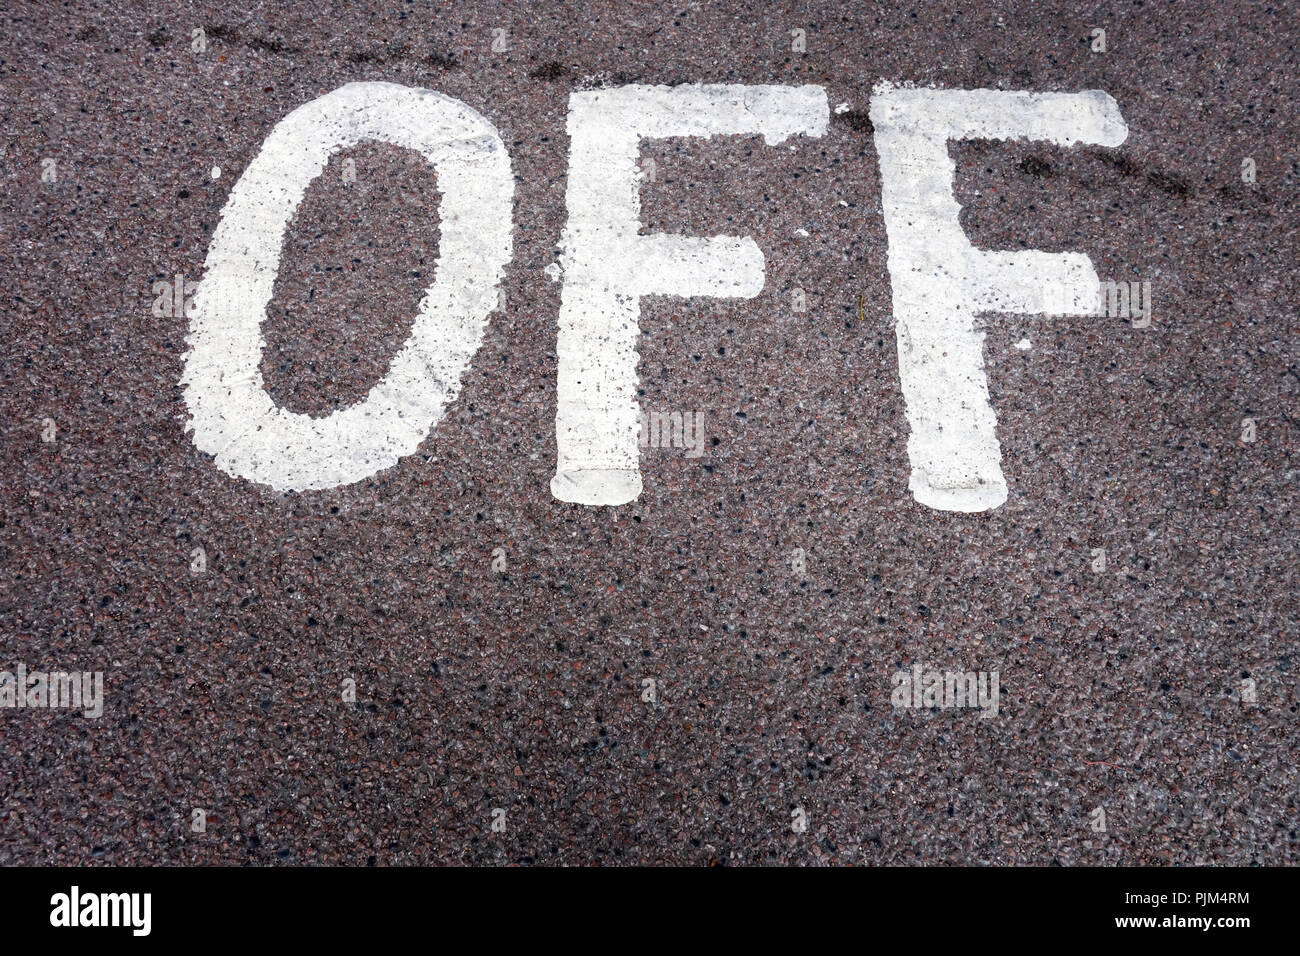 The word 'Off' written on road surface in car park - Stock Image